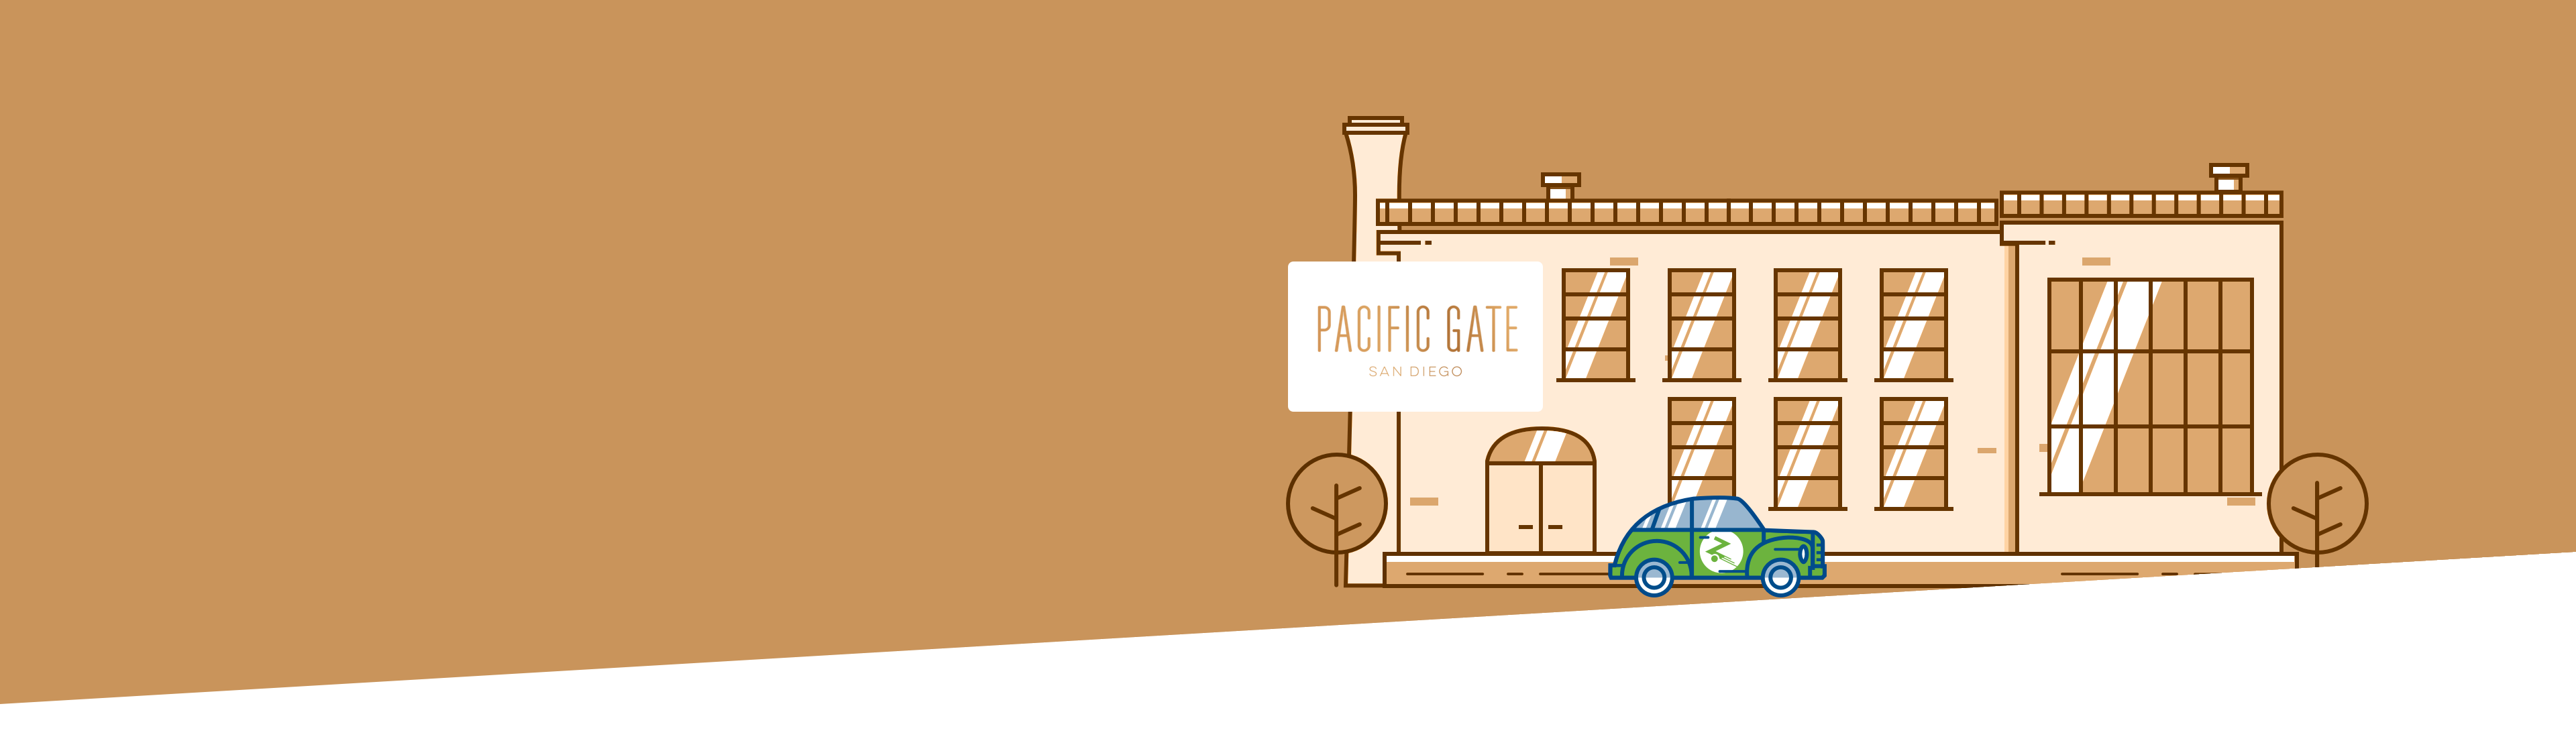 Building and Pacific Gate logo